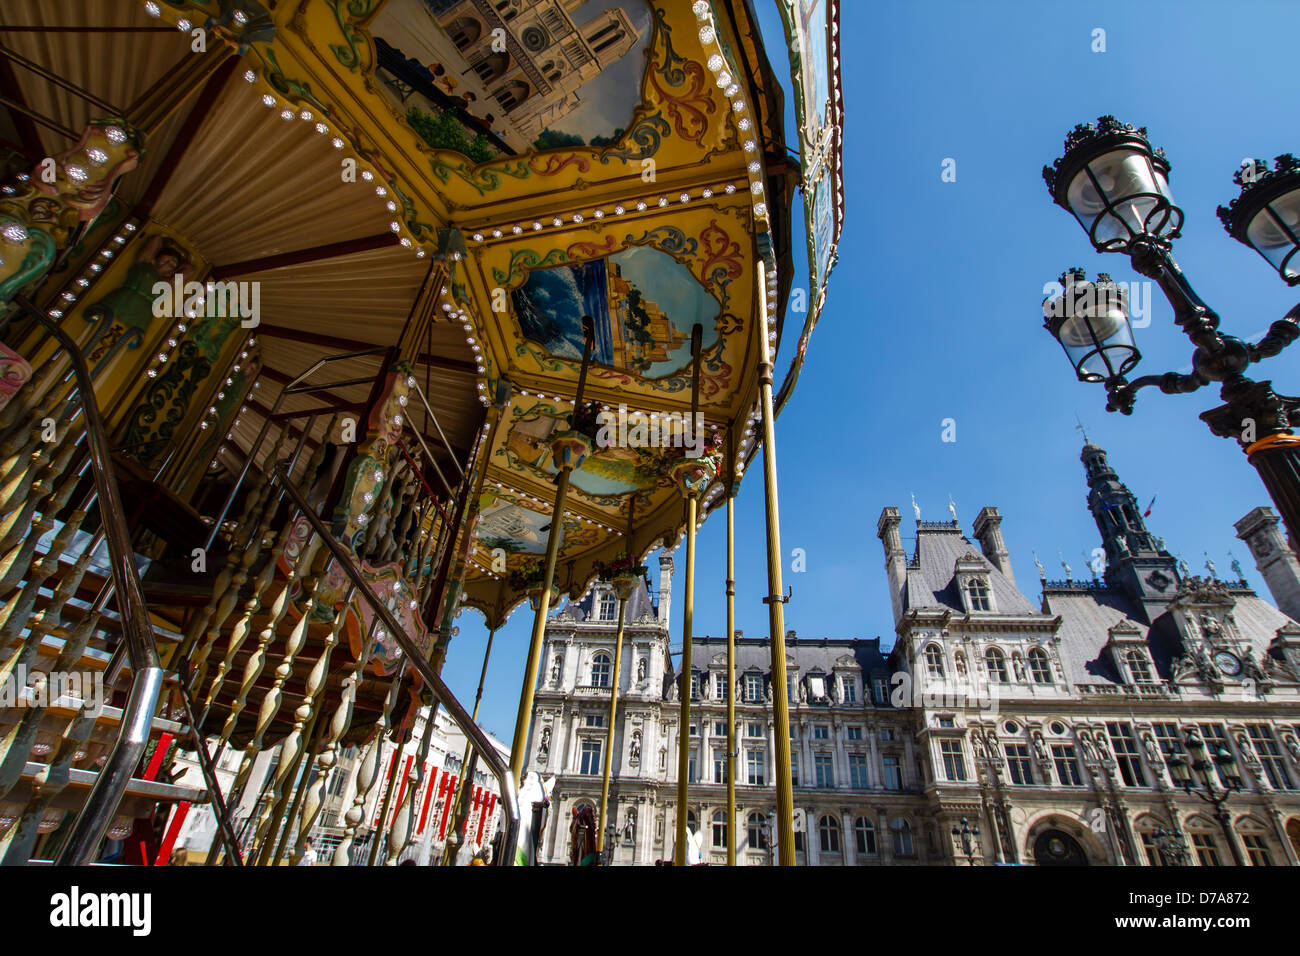 Carousel near the city hall in Paris, France - Stock Image